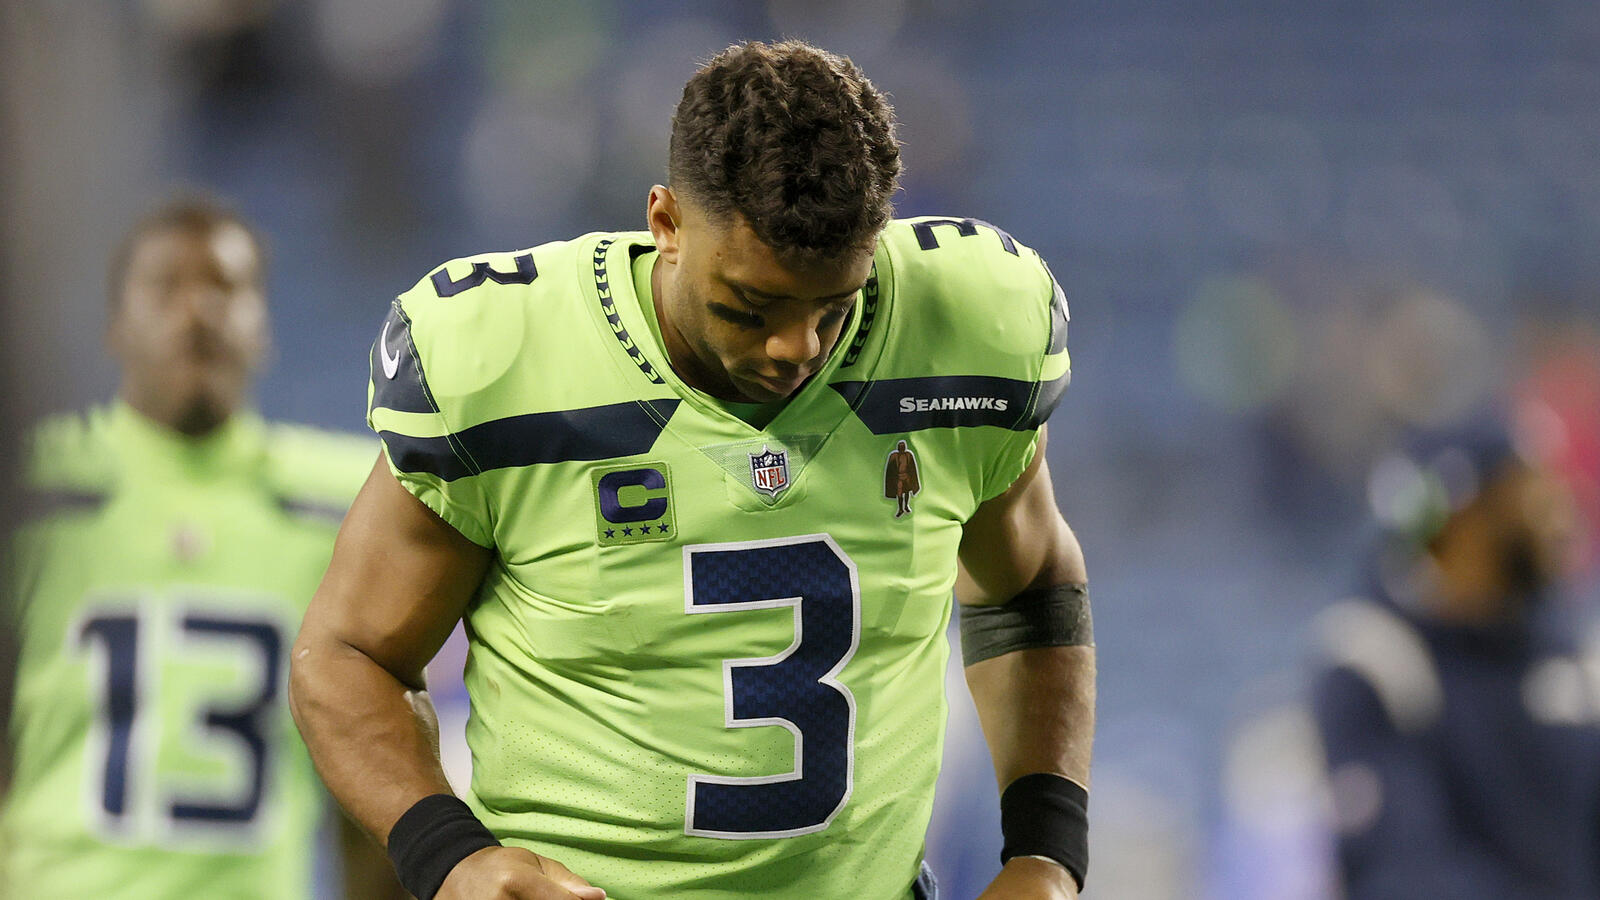 Report: Seahawks expect Russell Wilson to miss at least a month